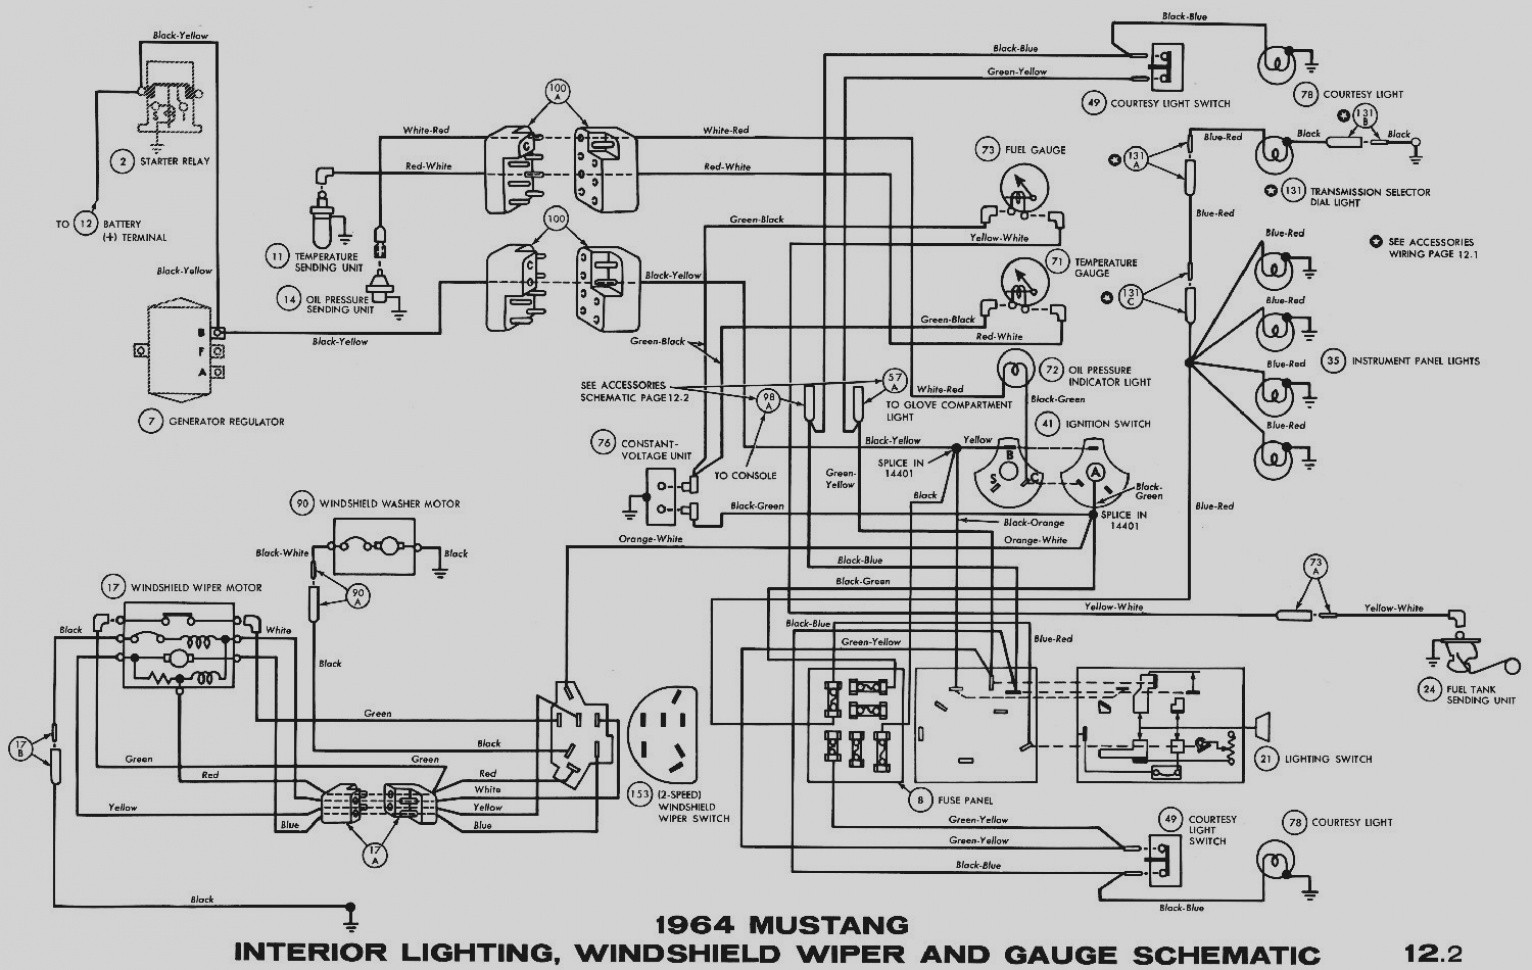 89 chevy tail light wiring schematic auto electrical wiring diagram jeep tail light wiring 89 chevy [ 1532 x 970 Pixel ]